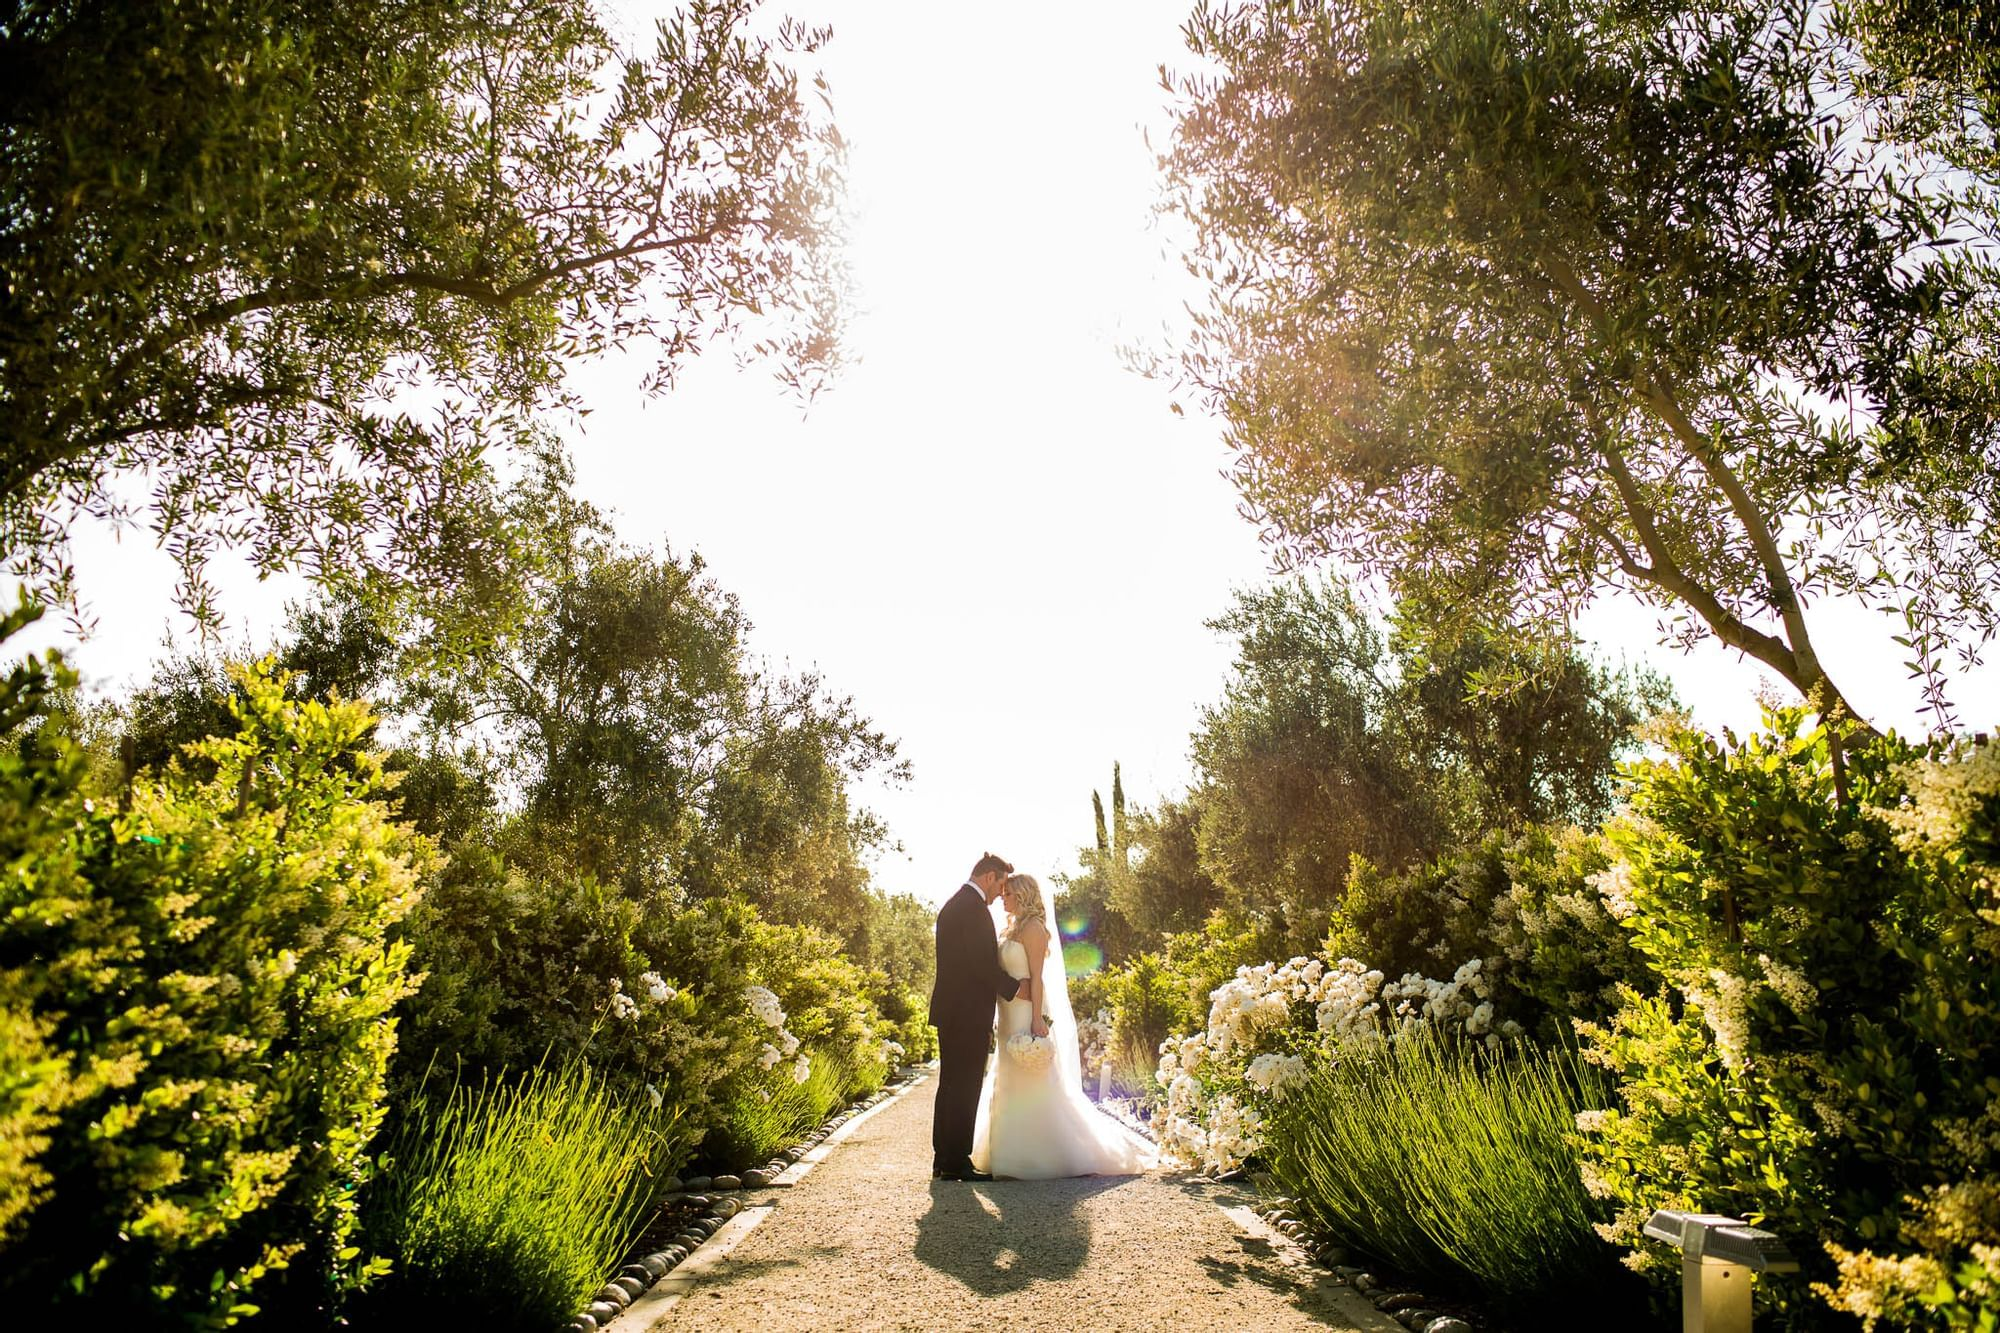 Bride and groom touching forward while standing in landscape